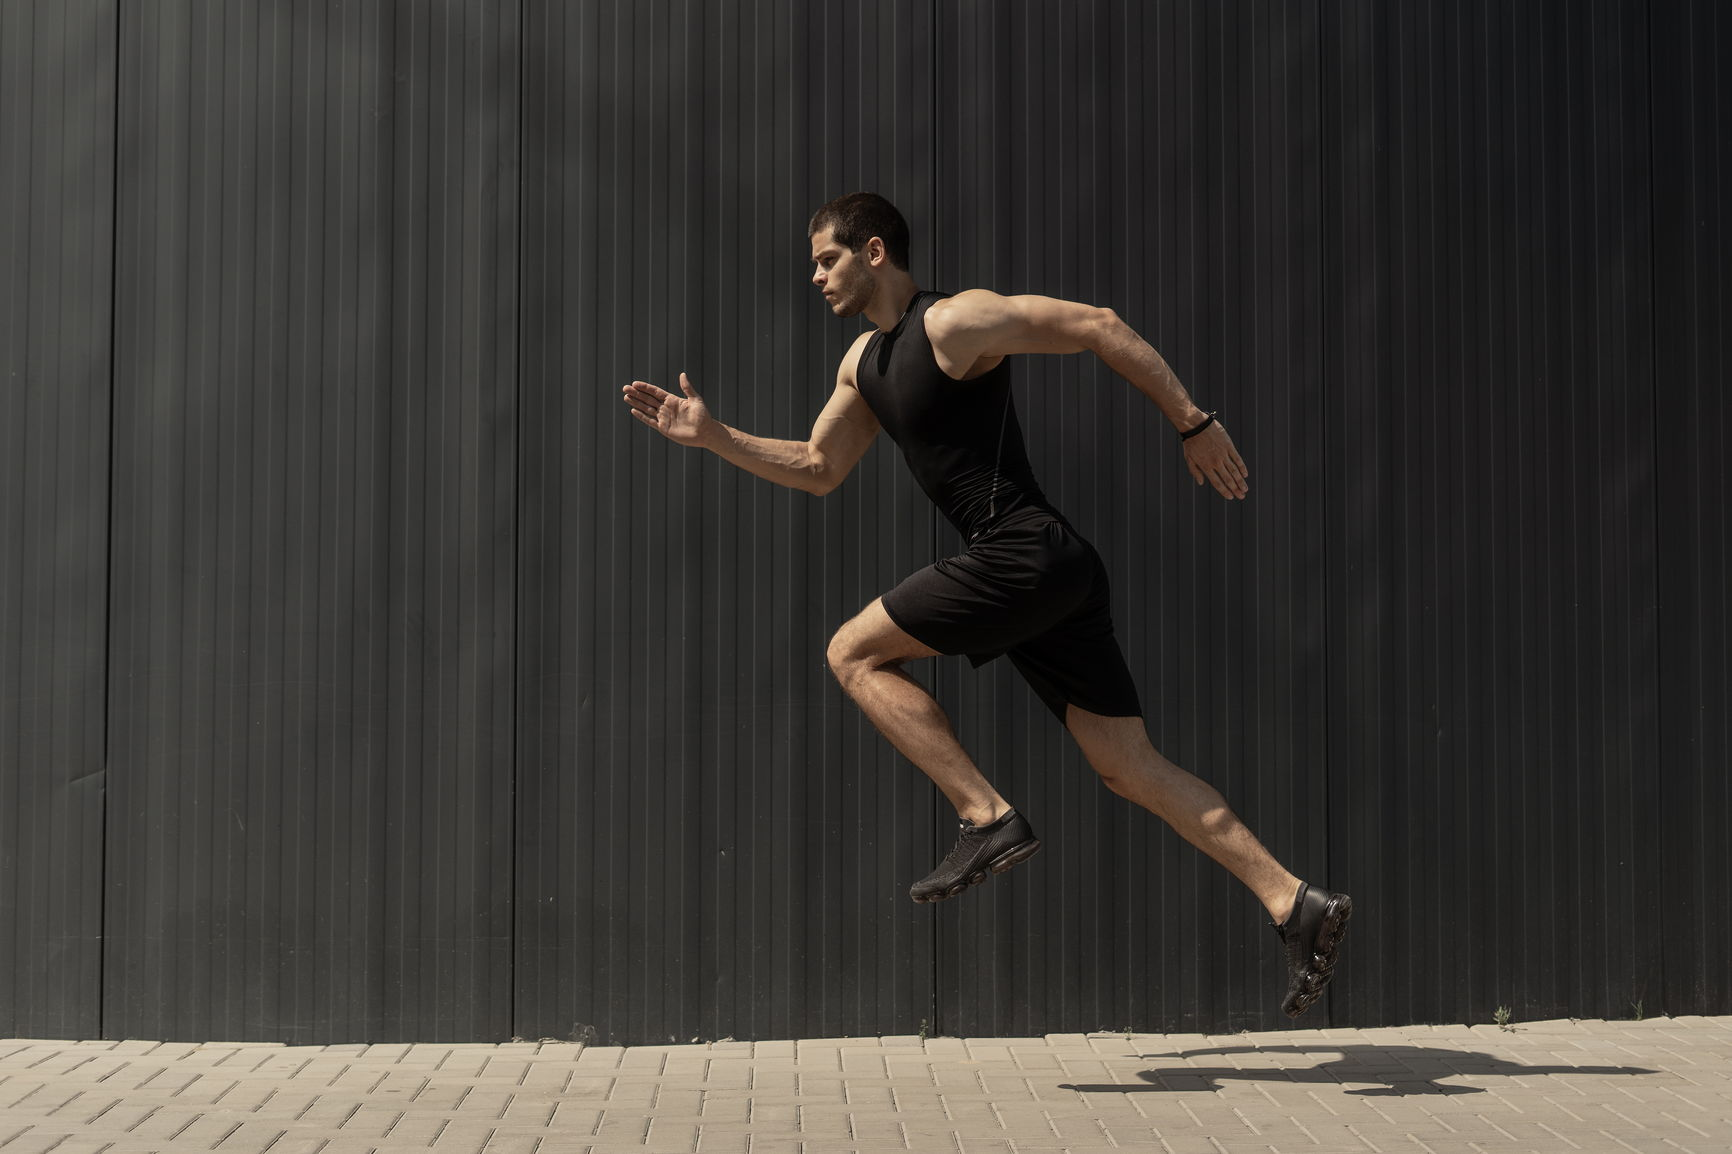 condition training helps improve metabolism